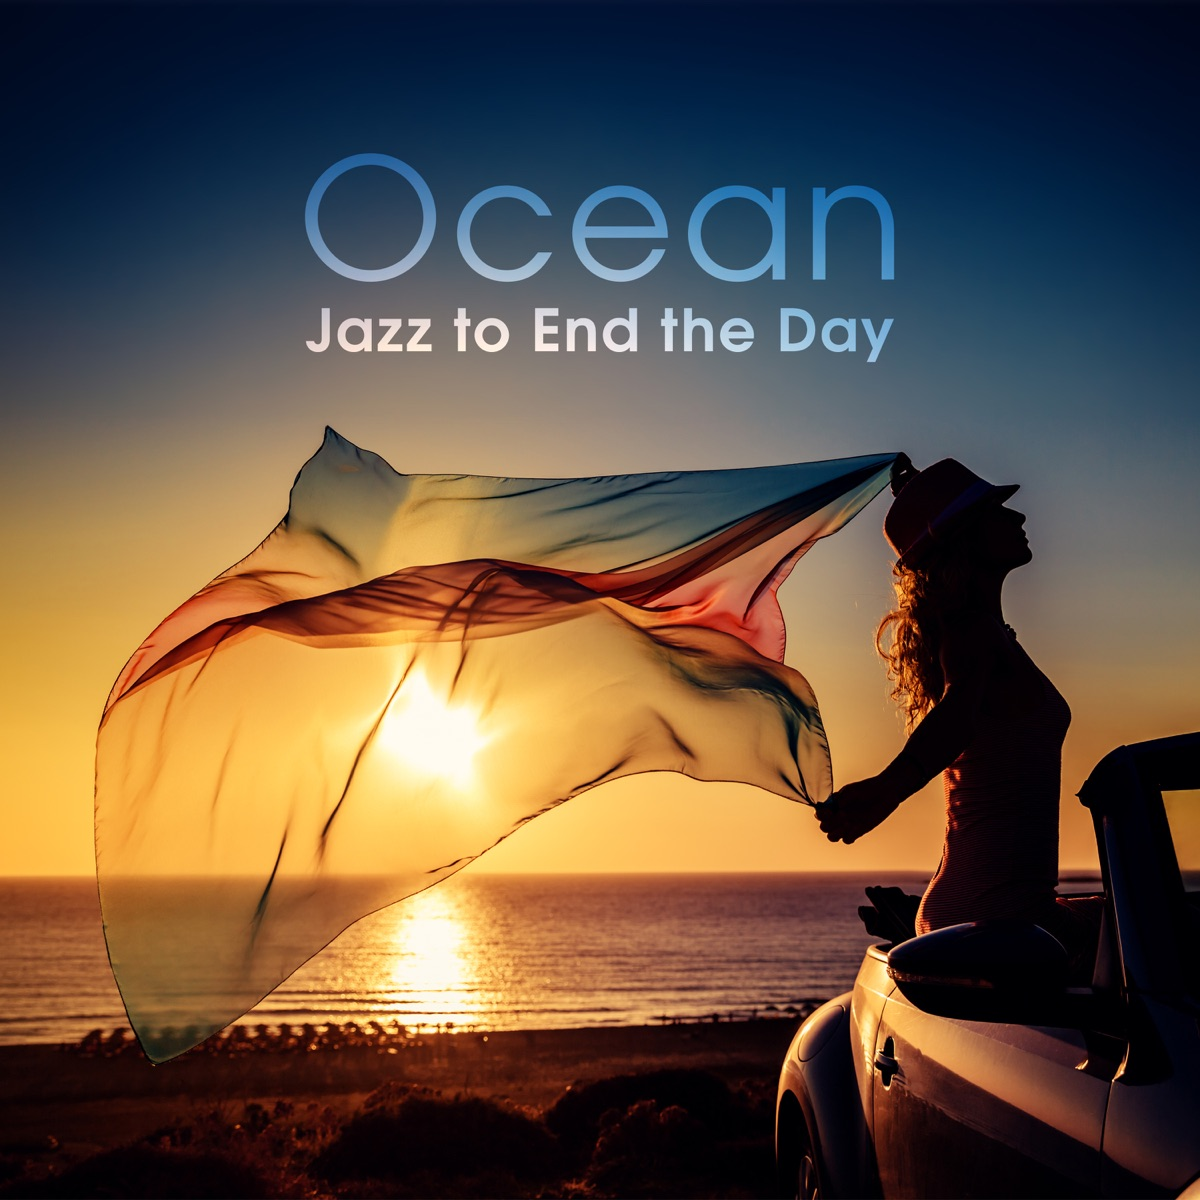 Ocean - Jazz to End the Day Album Cover by Piano Jazz